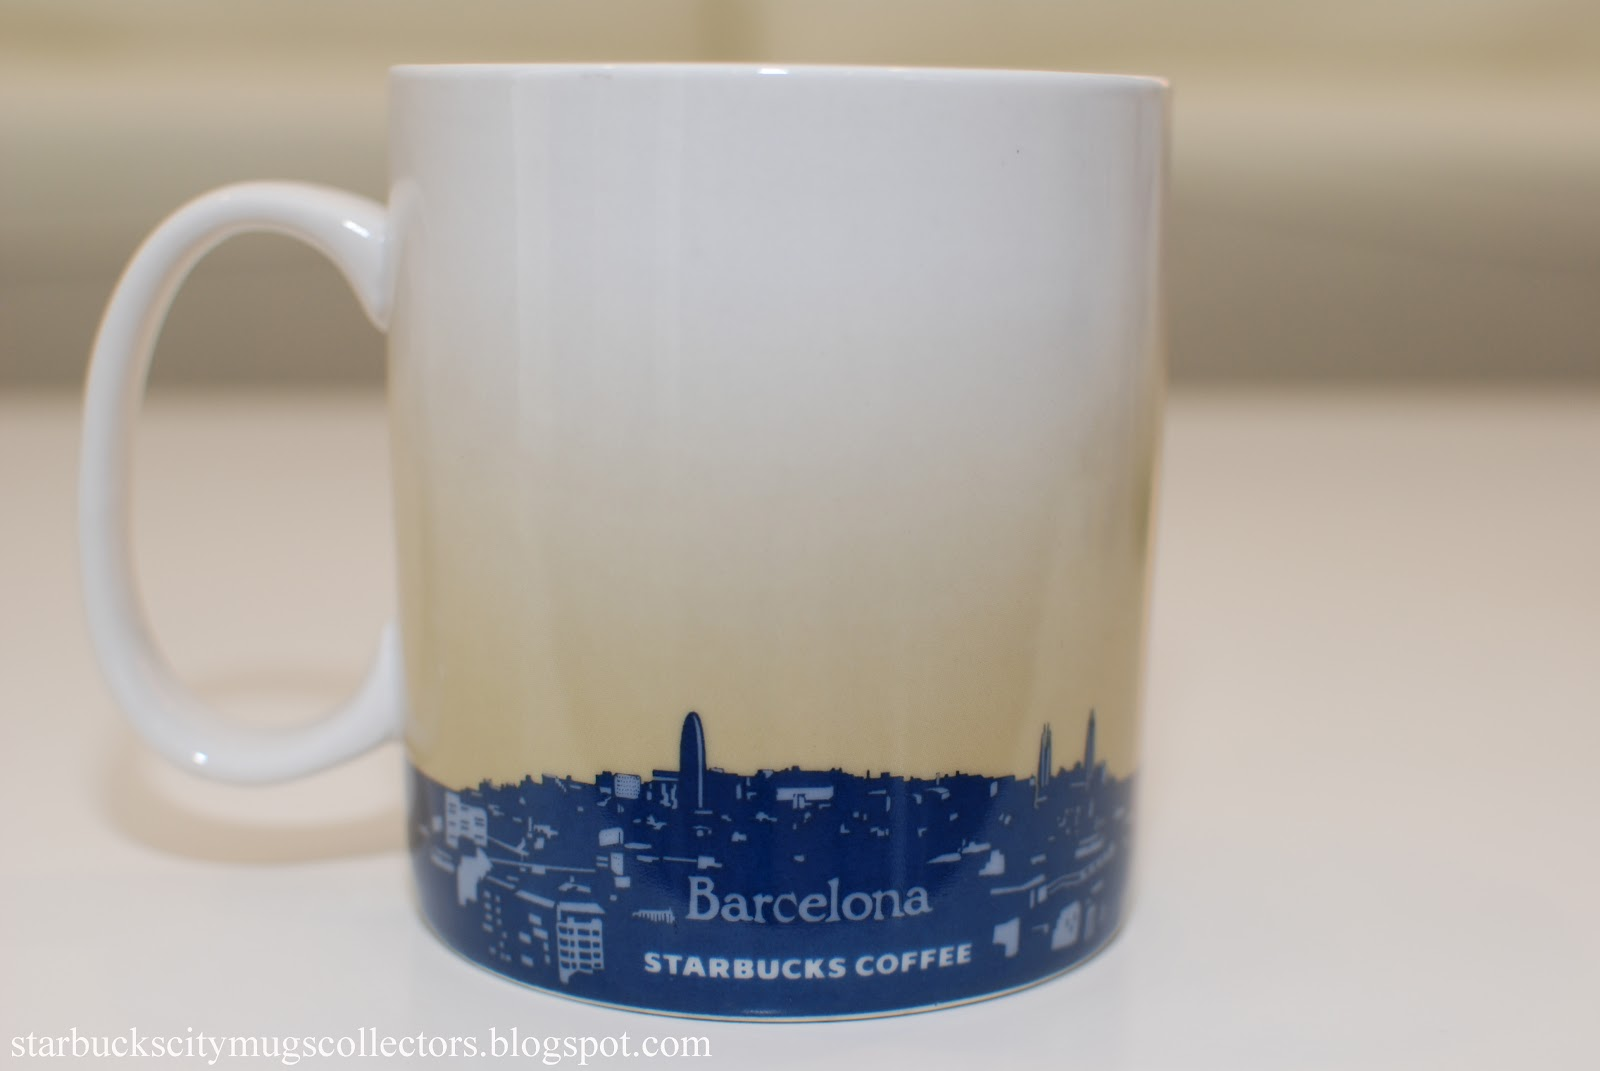 MugsBarcelona Icon Starbucks City Mug MugsBarcelona City Starbucks Starbucks Icon Mug wk0PnO